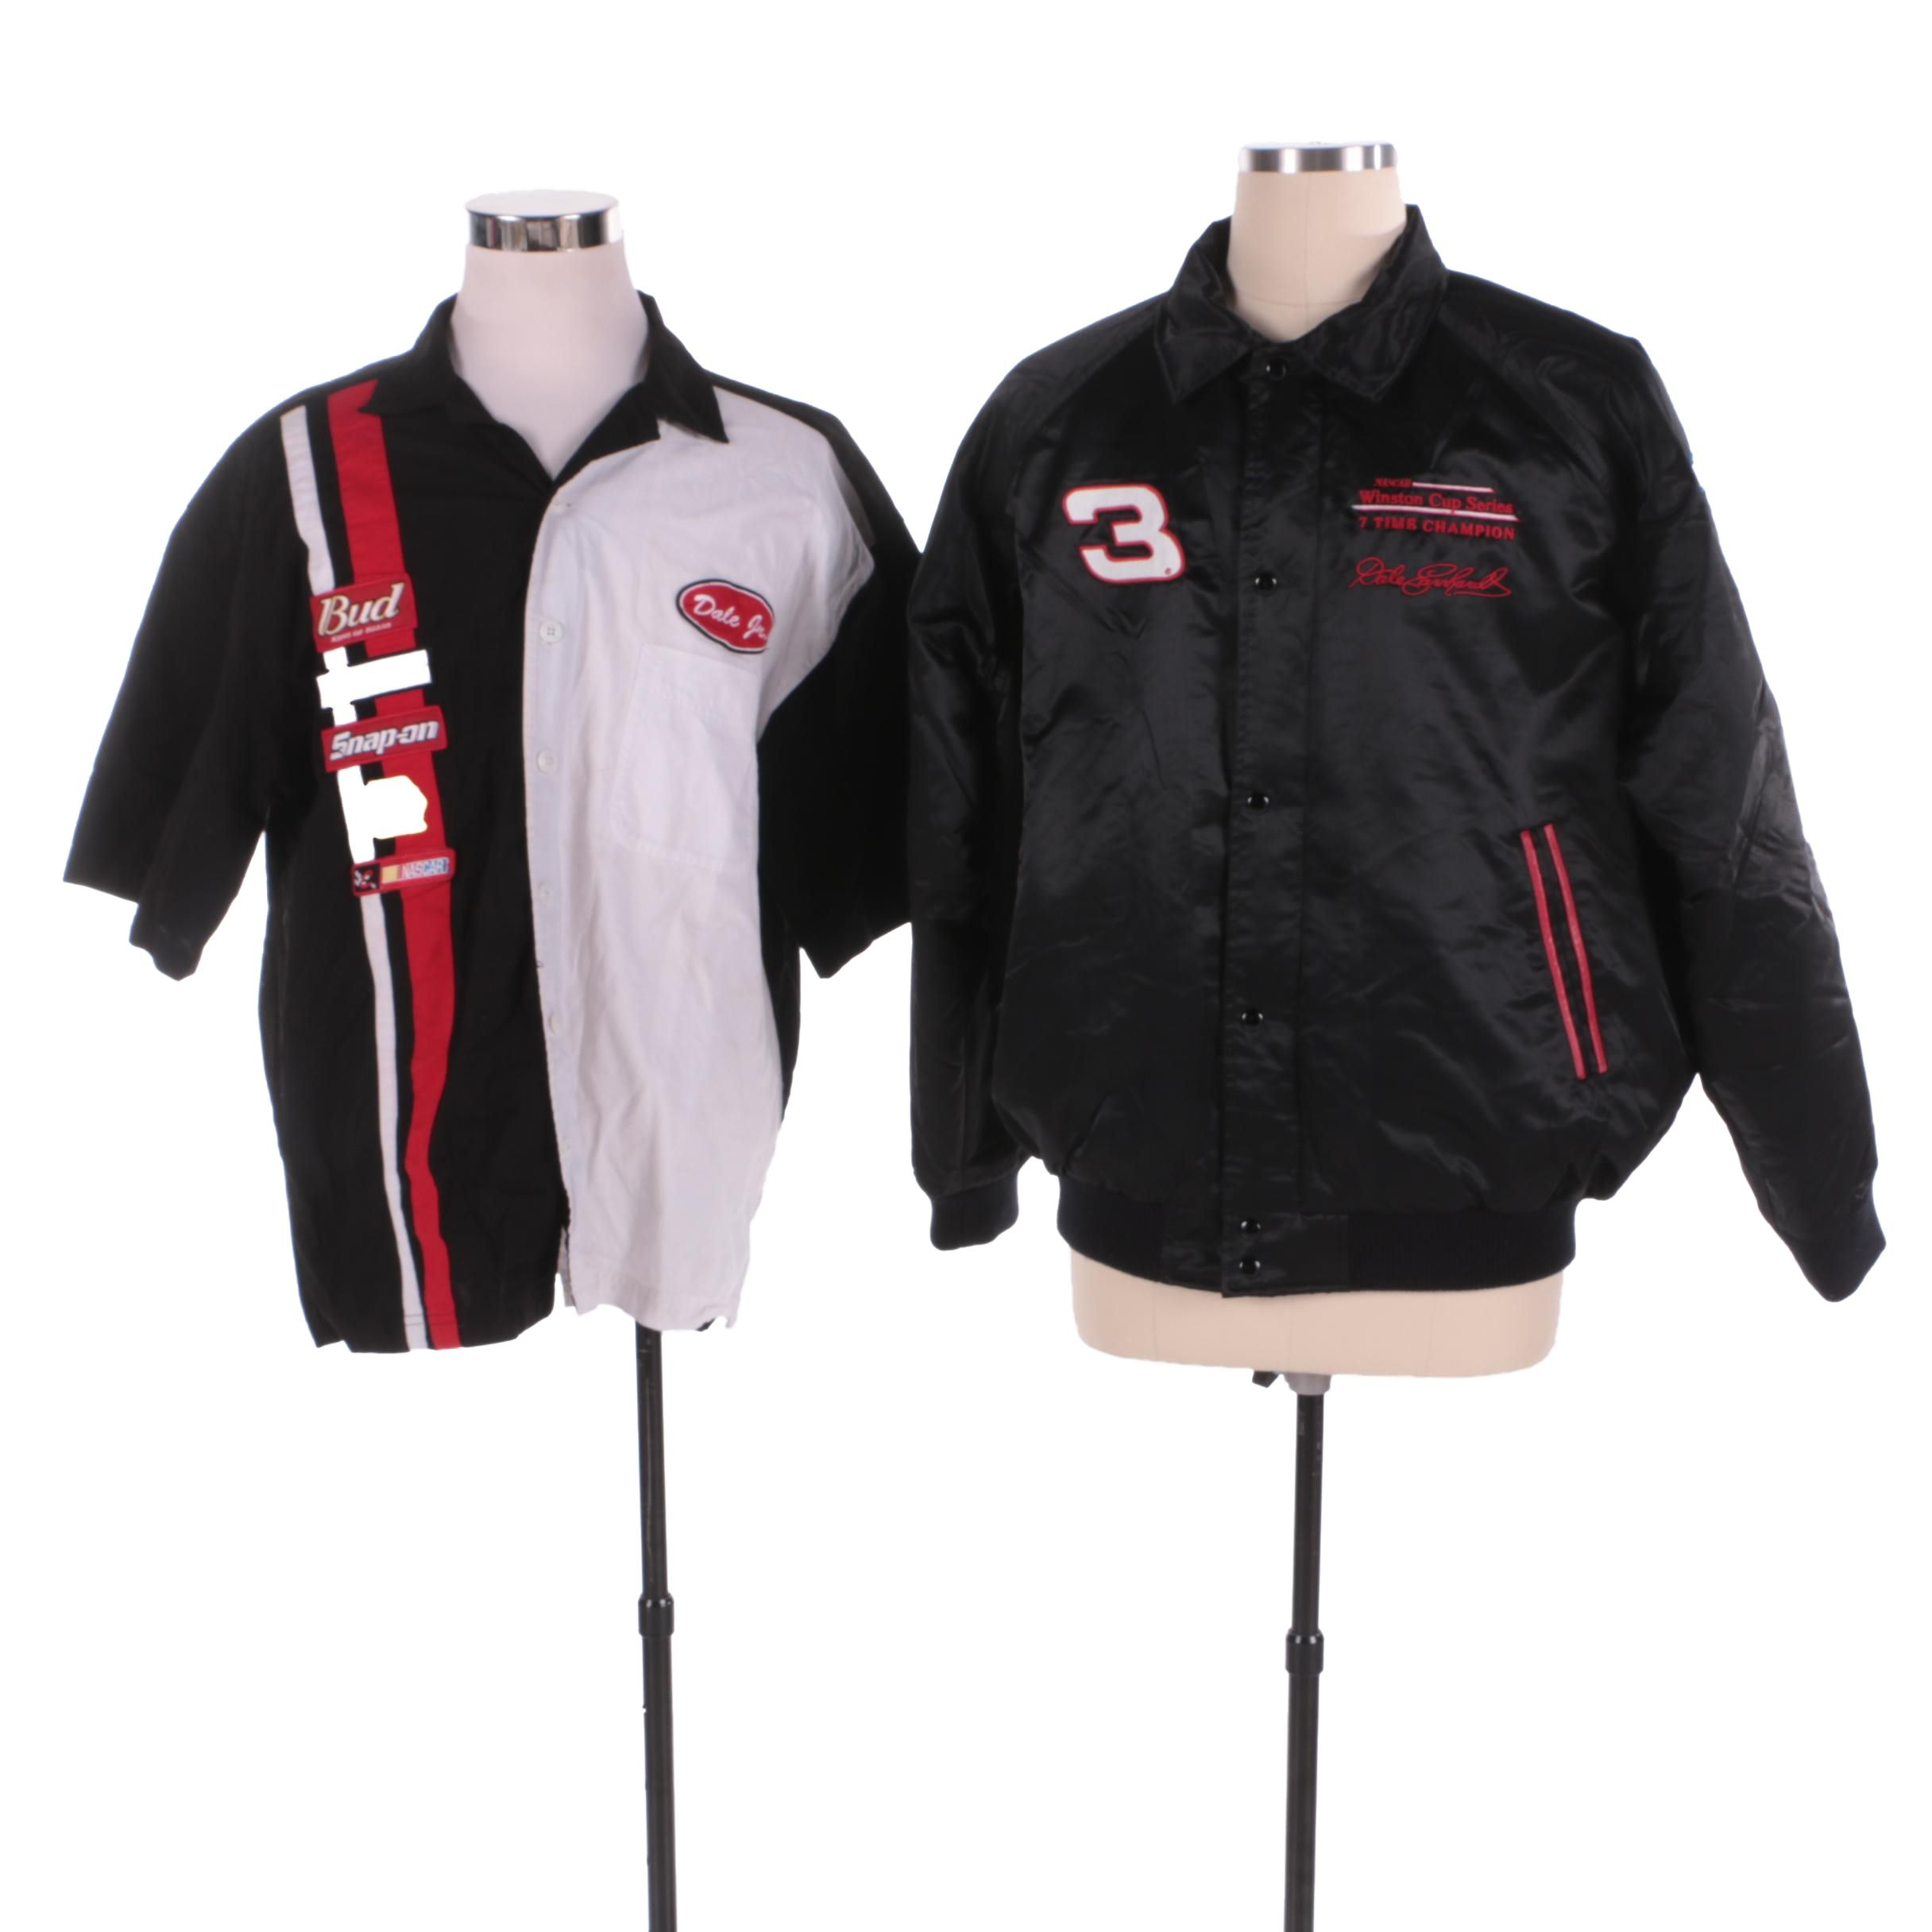 Dale Earnhardt Jr. Jacket and Short-Sleeve Button Down Shirt